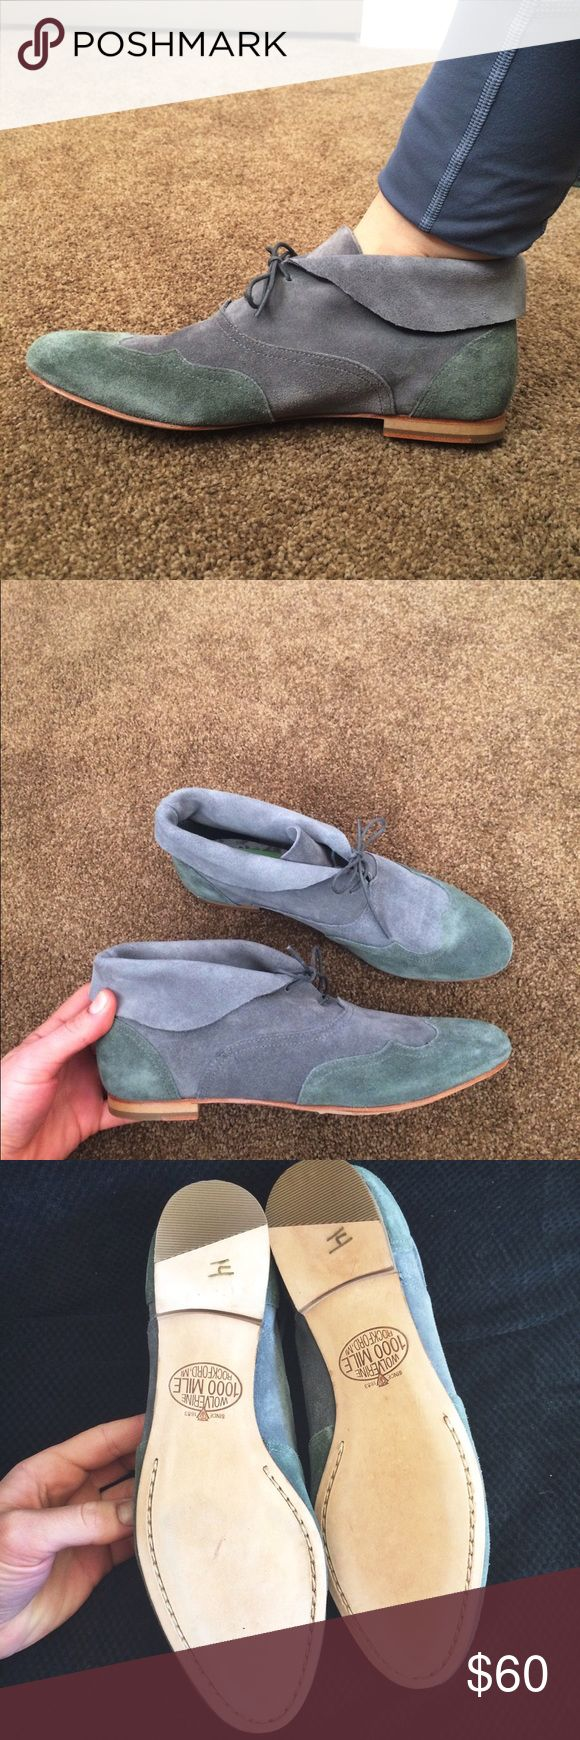 Wolverine 1000 Mile suede blue booties/oxfords 9B Like new condition. Size US 9B. I usually wear an 8.5 and these fit me perfectly. The color is to die for 😍 excellent quality shoes. Wolverine Shoes Ankle Boots & Booties